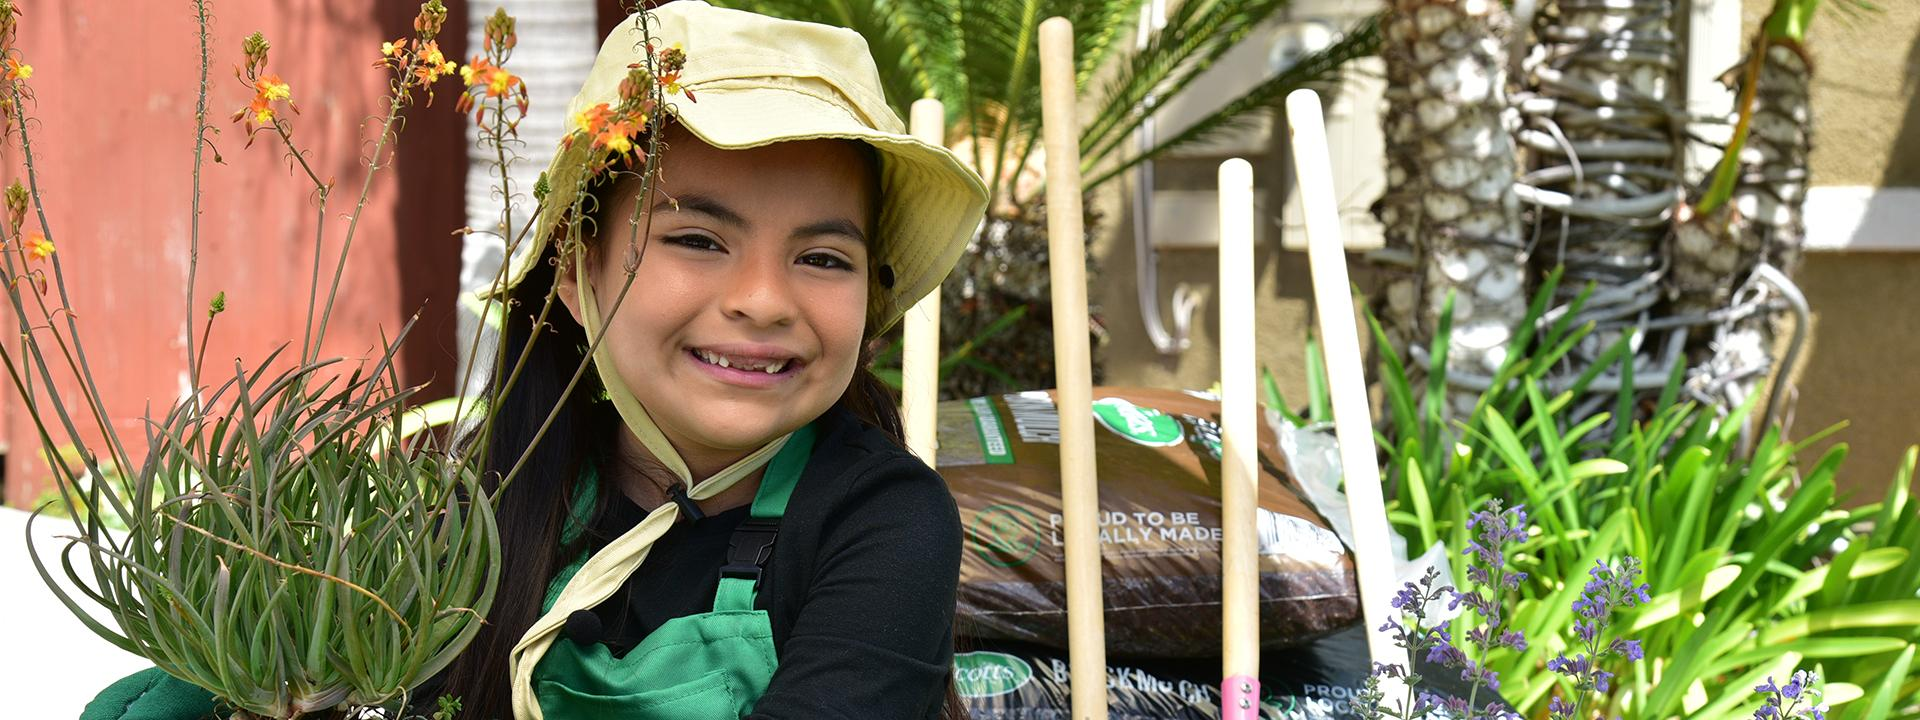 Child smiling wearing sunhat and gloves holding potted plant